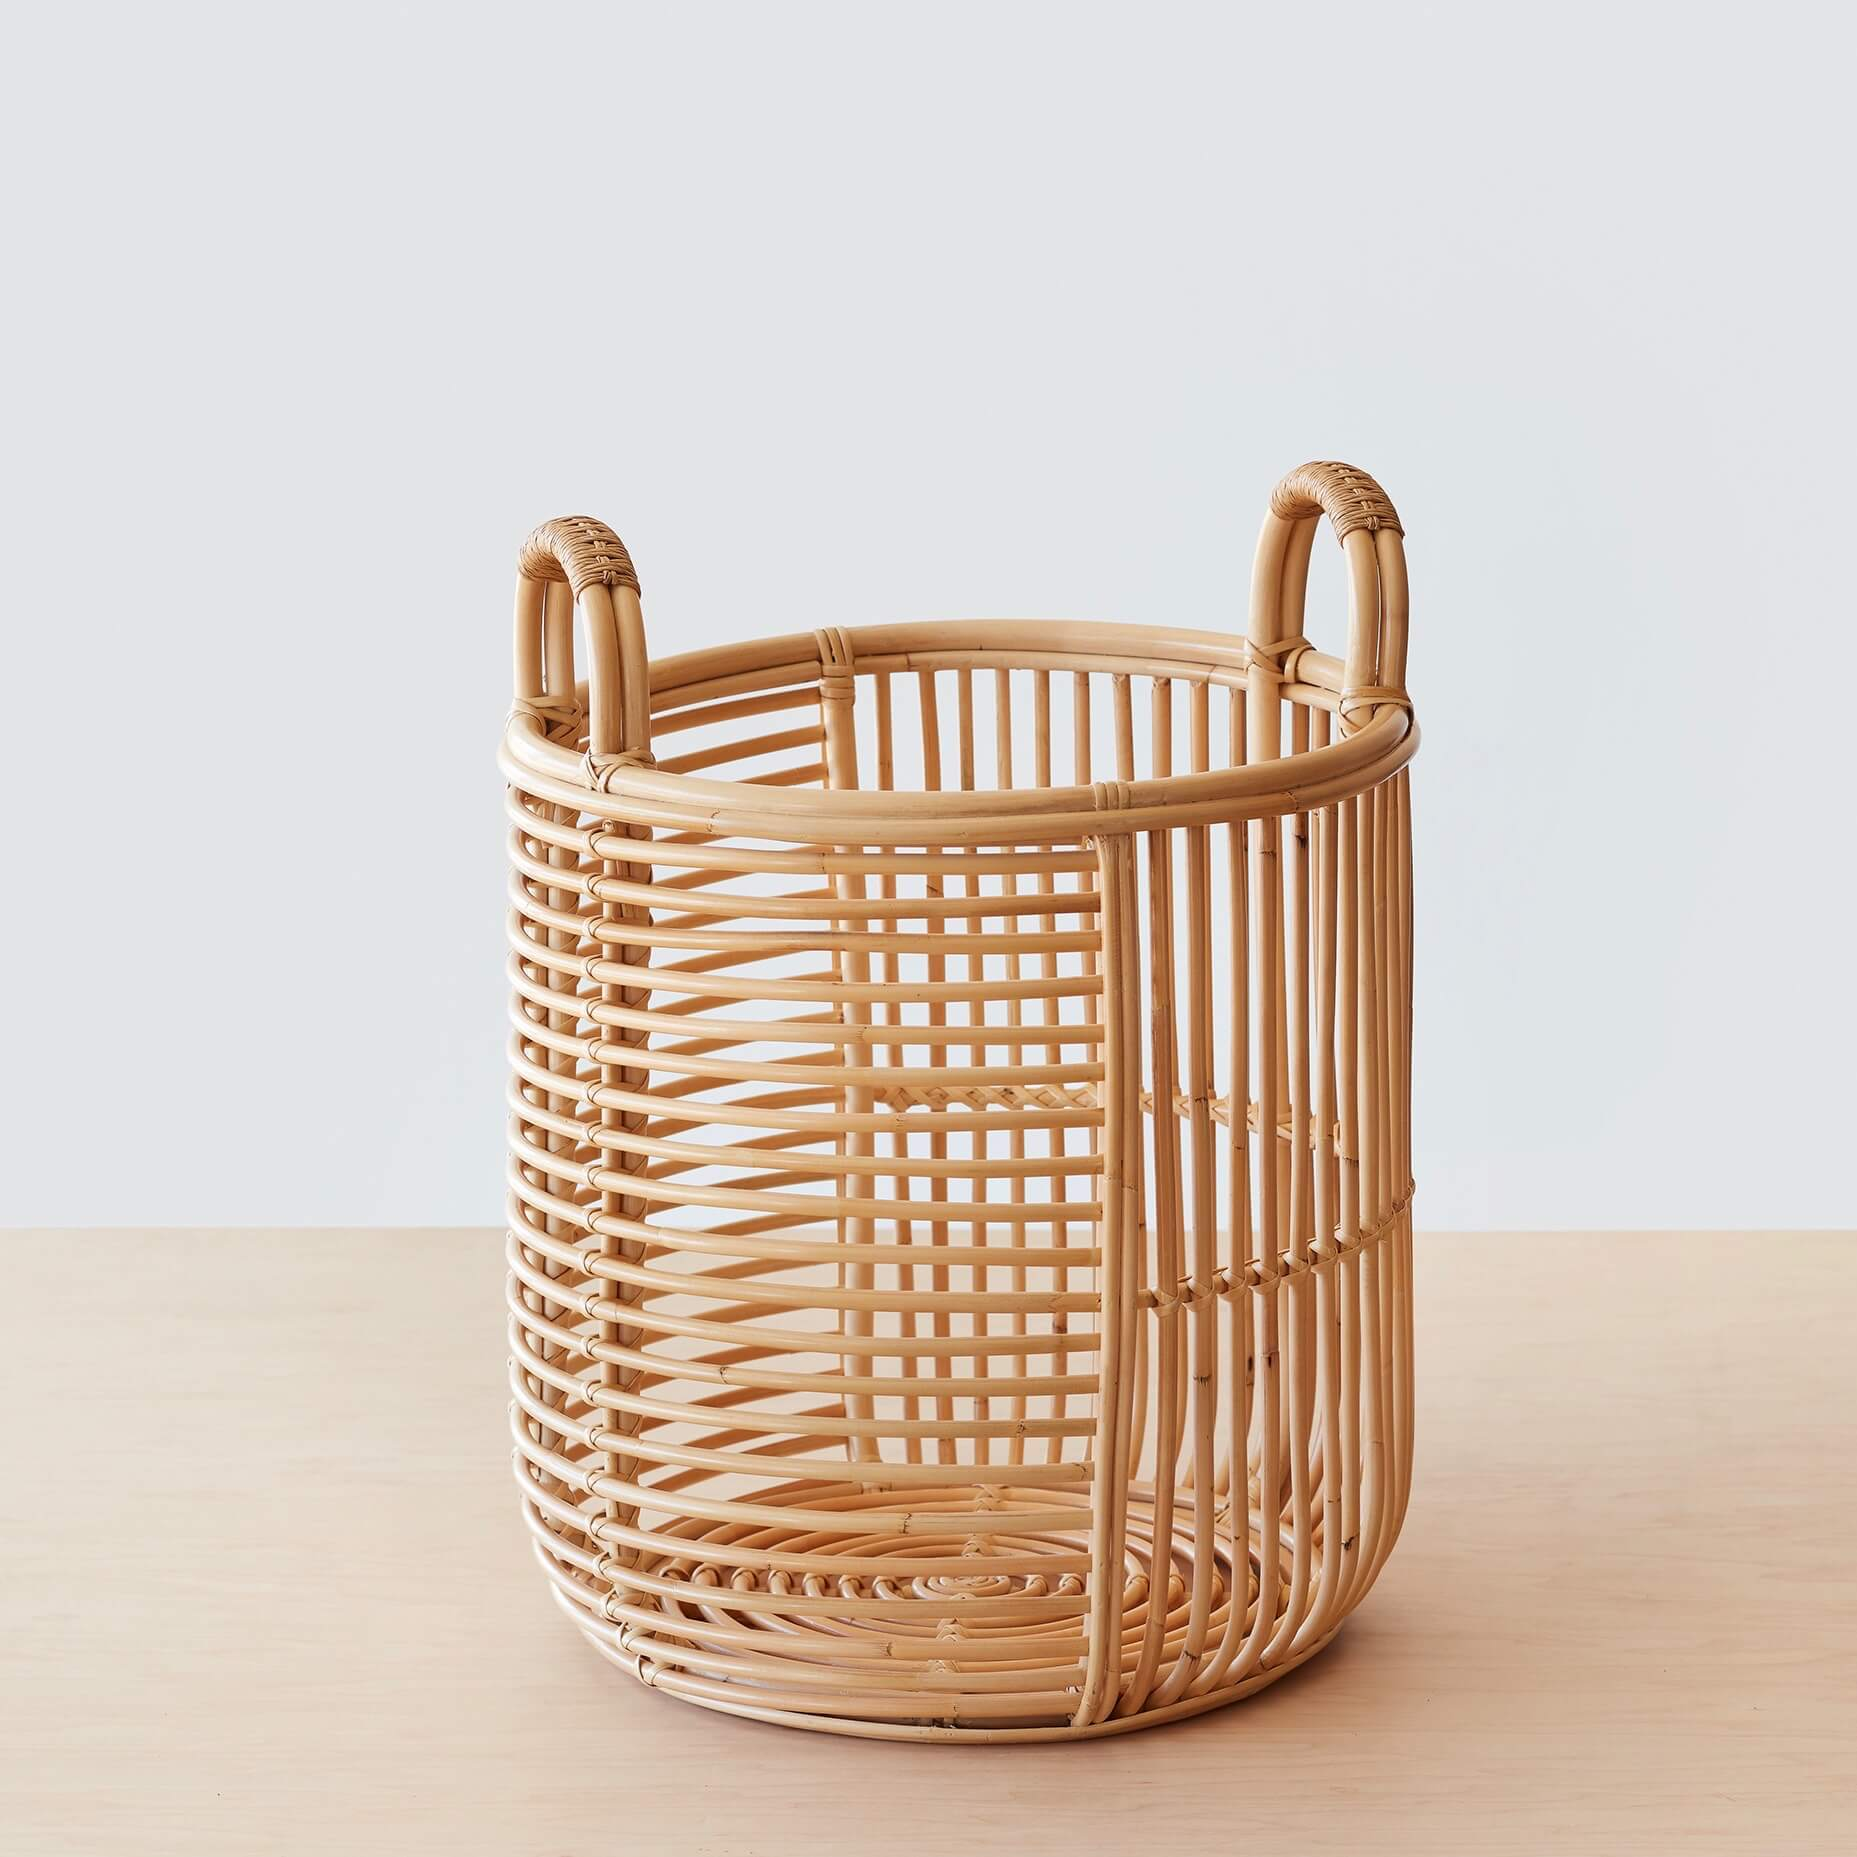 Java Rattan Baskets in 2020 | Rattan basket, Rattan, Basket